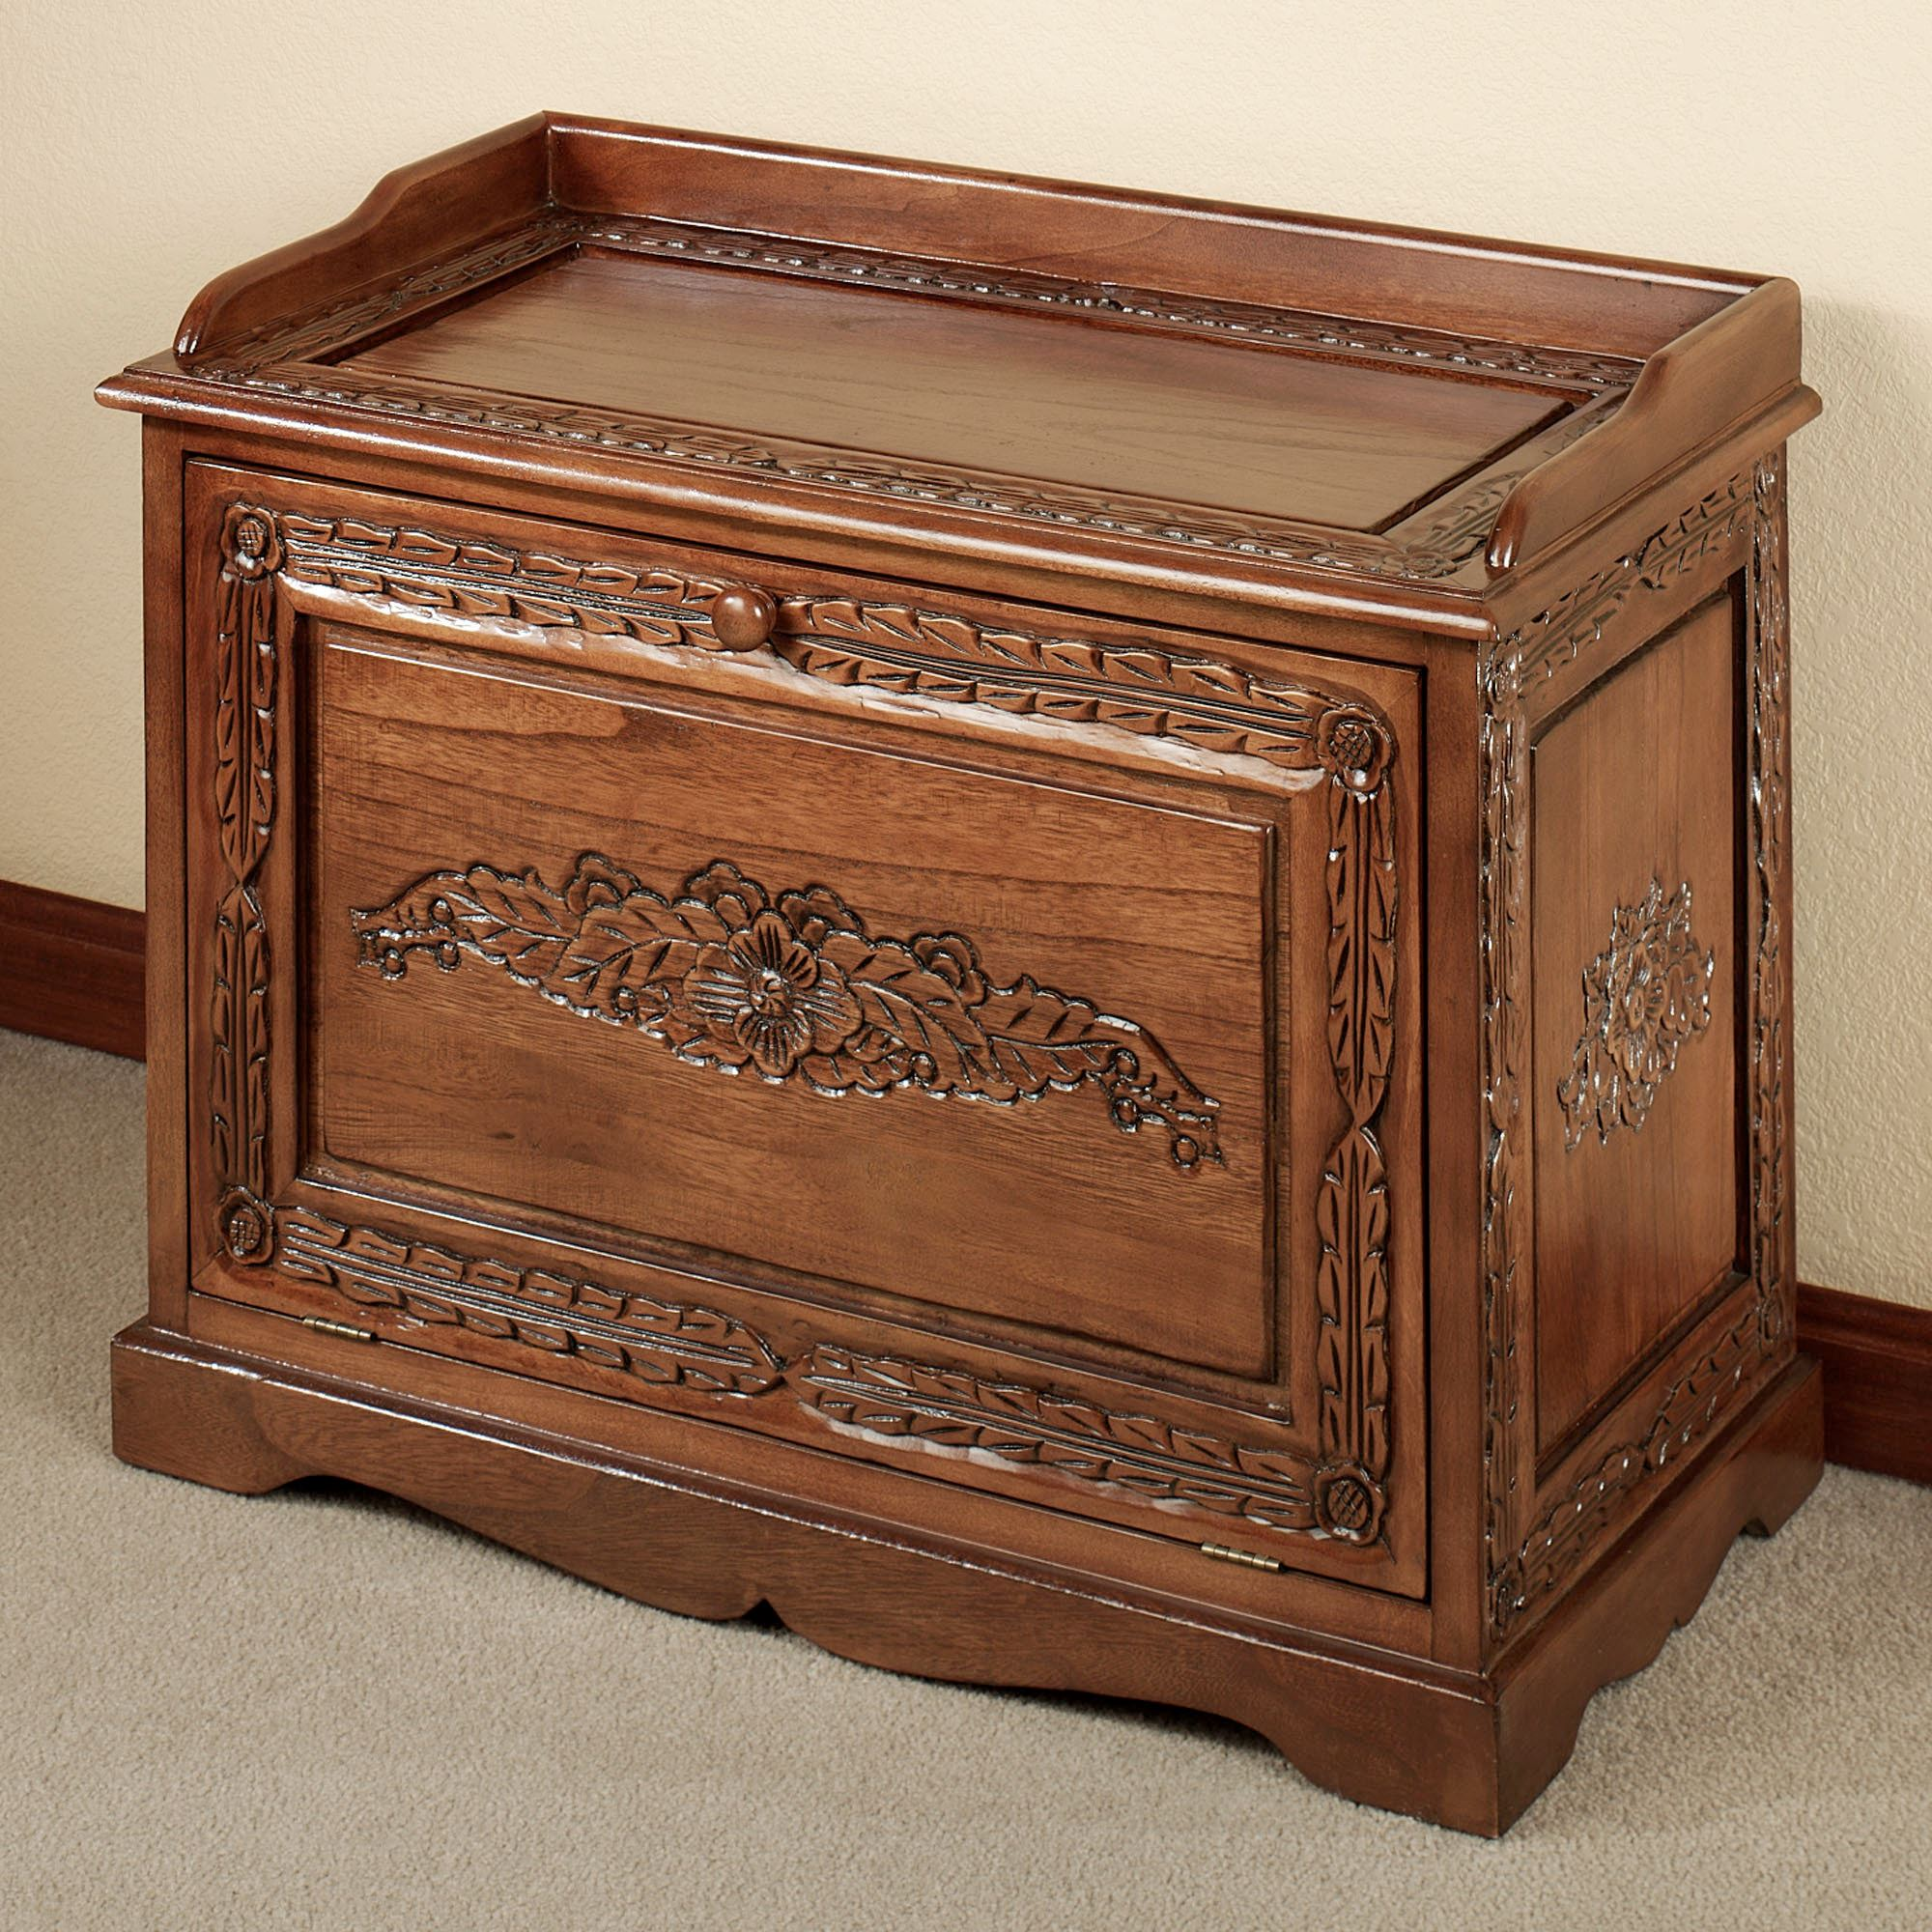 Victoriana Wooden Shoe Storage Bench